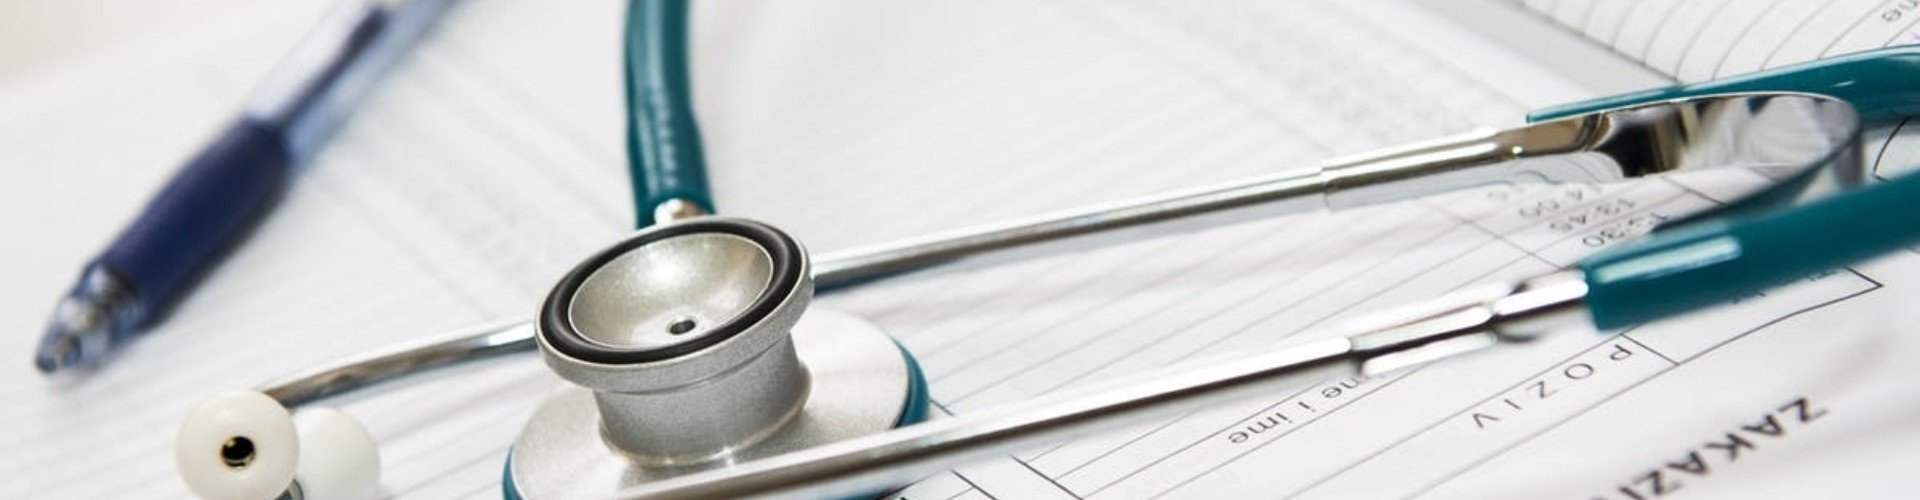 ICU Nurse Resume Sample & SICU / ICU Job Description Tips